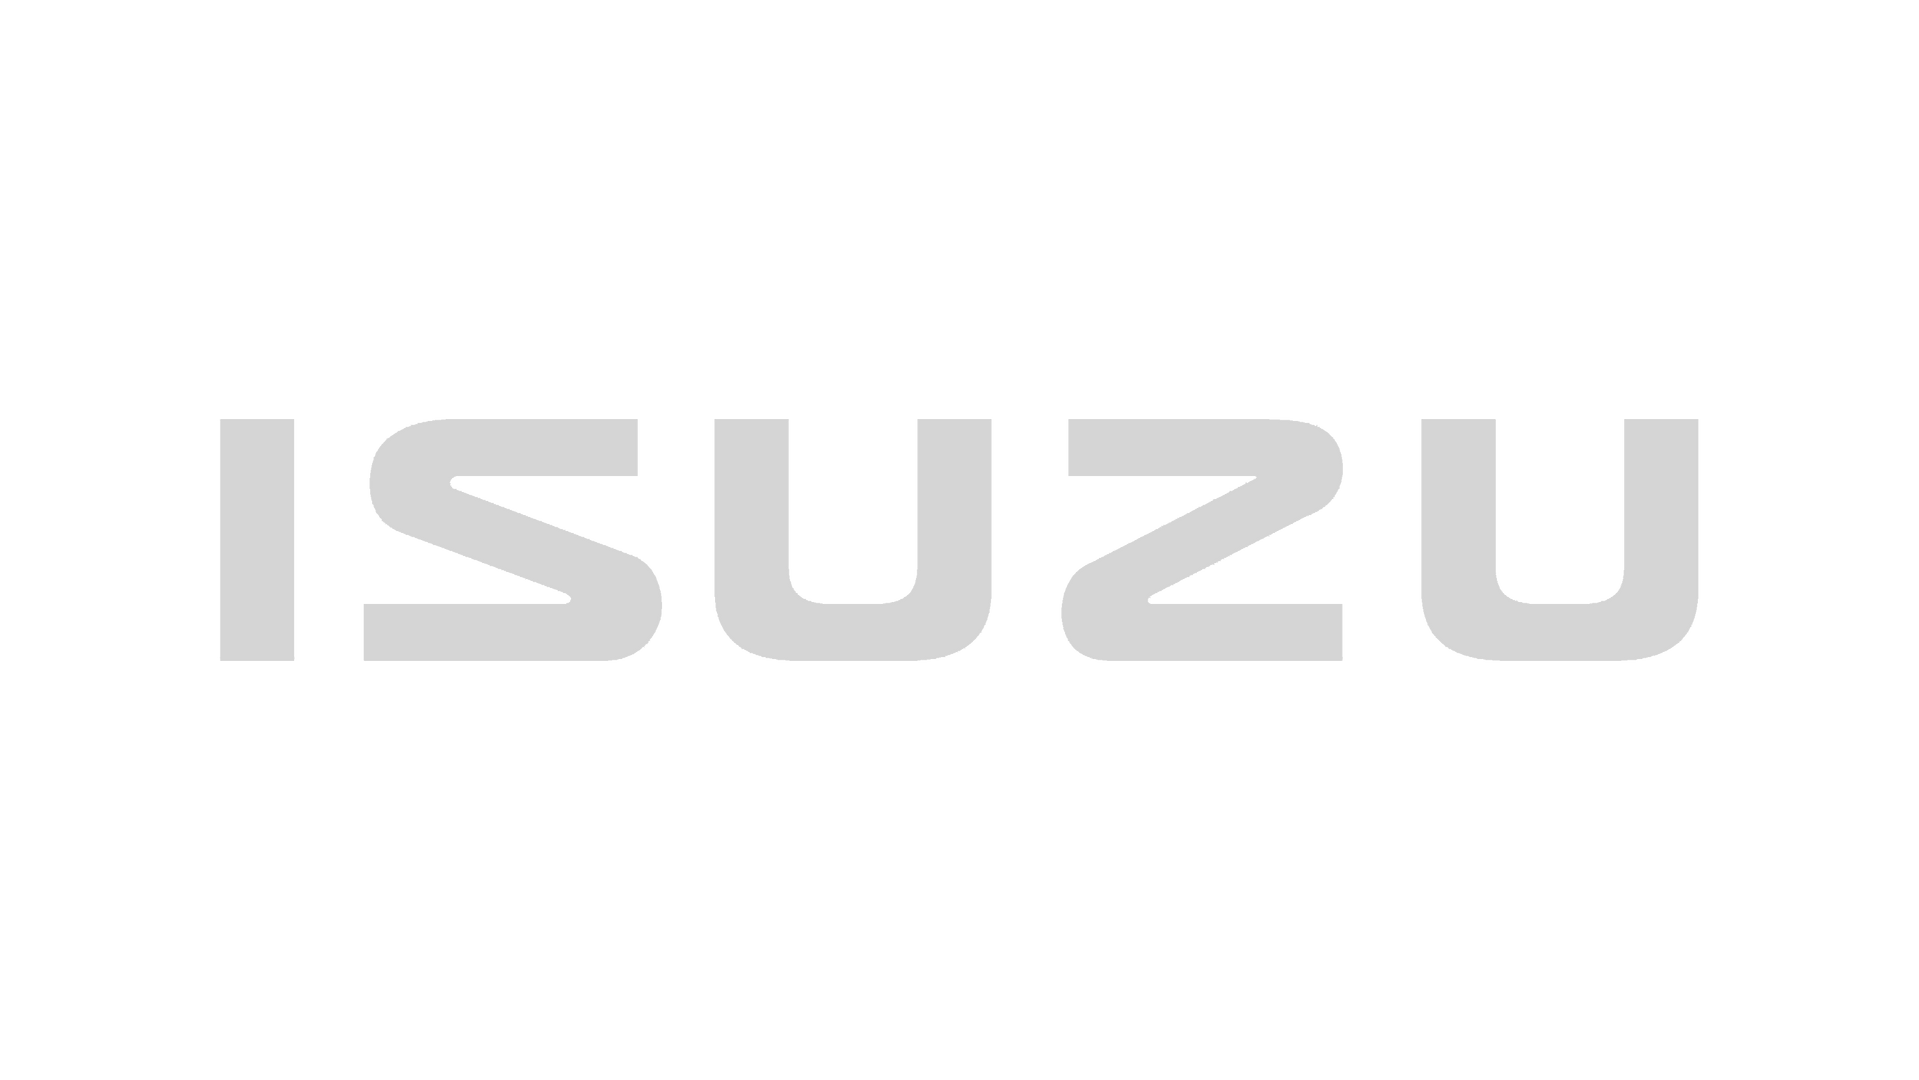 Isuzu_edited.png